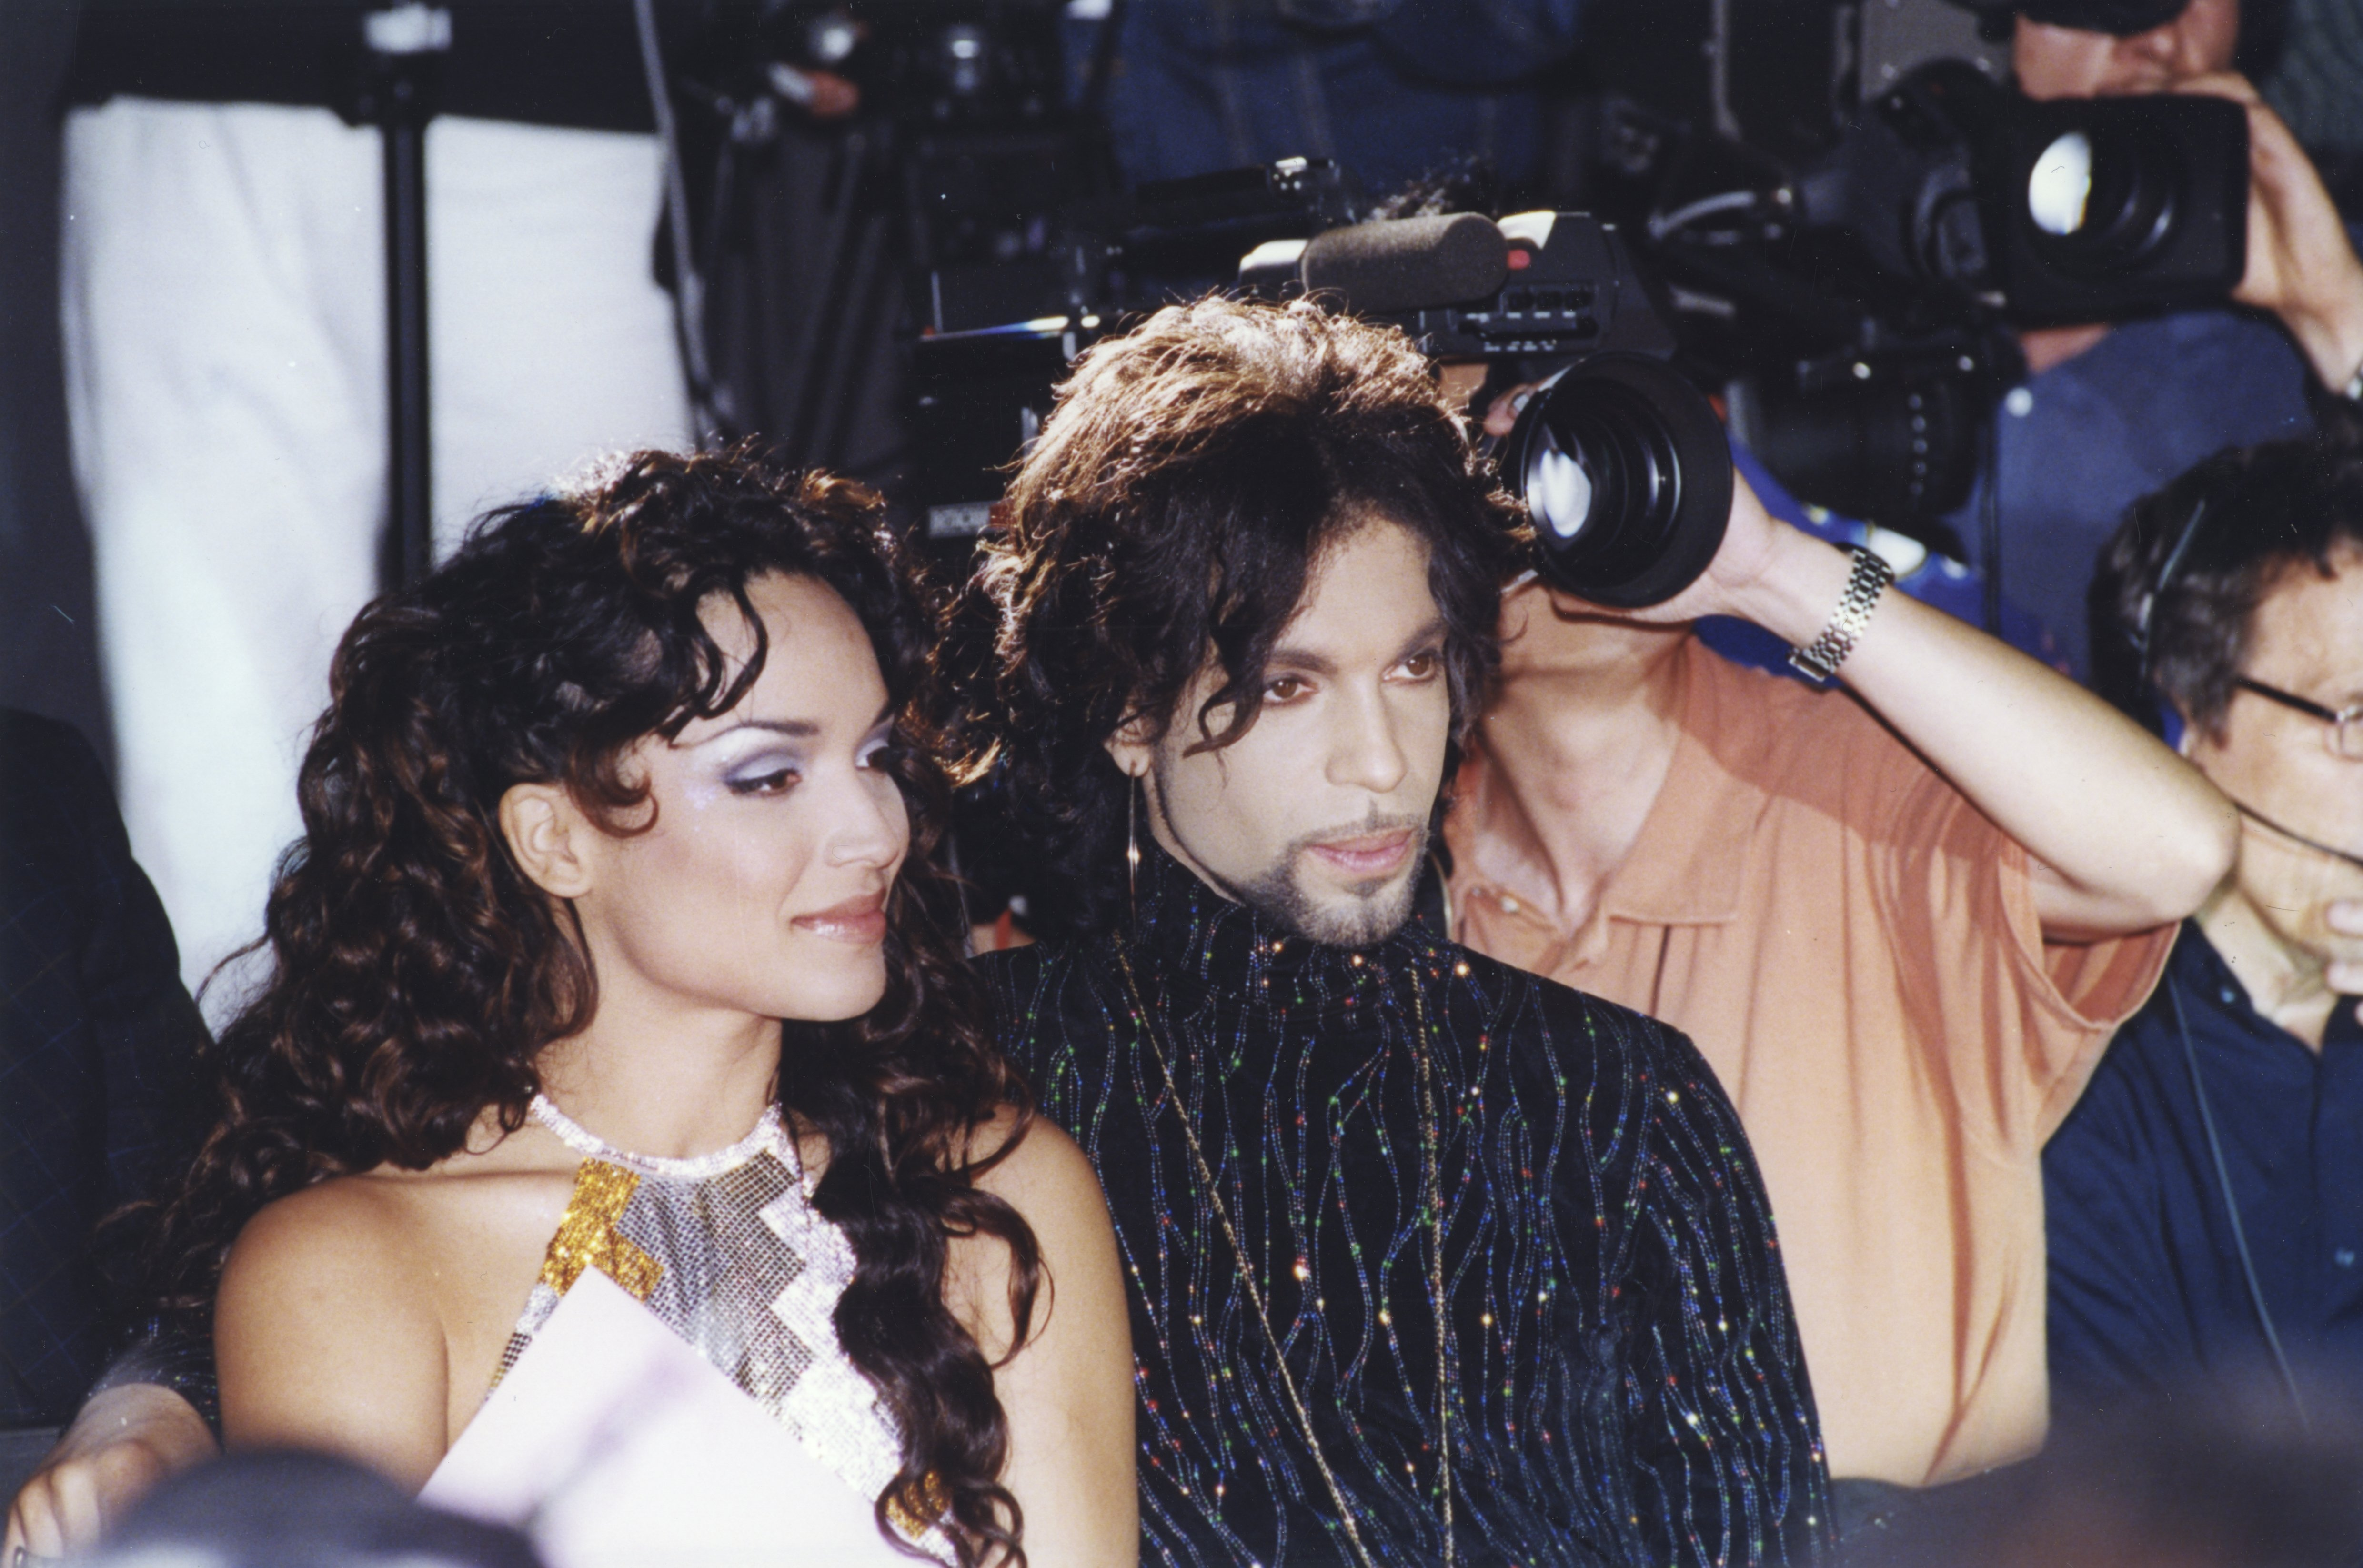 Prince and Mayte Garcia during the Versace fashion show in Paris on July 15, 1999, France | Photo: GettyImages